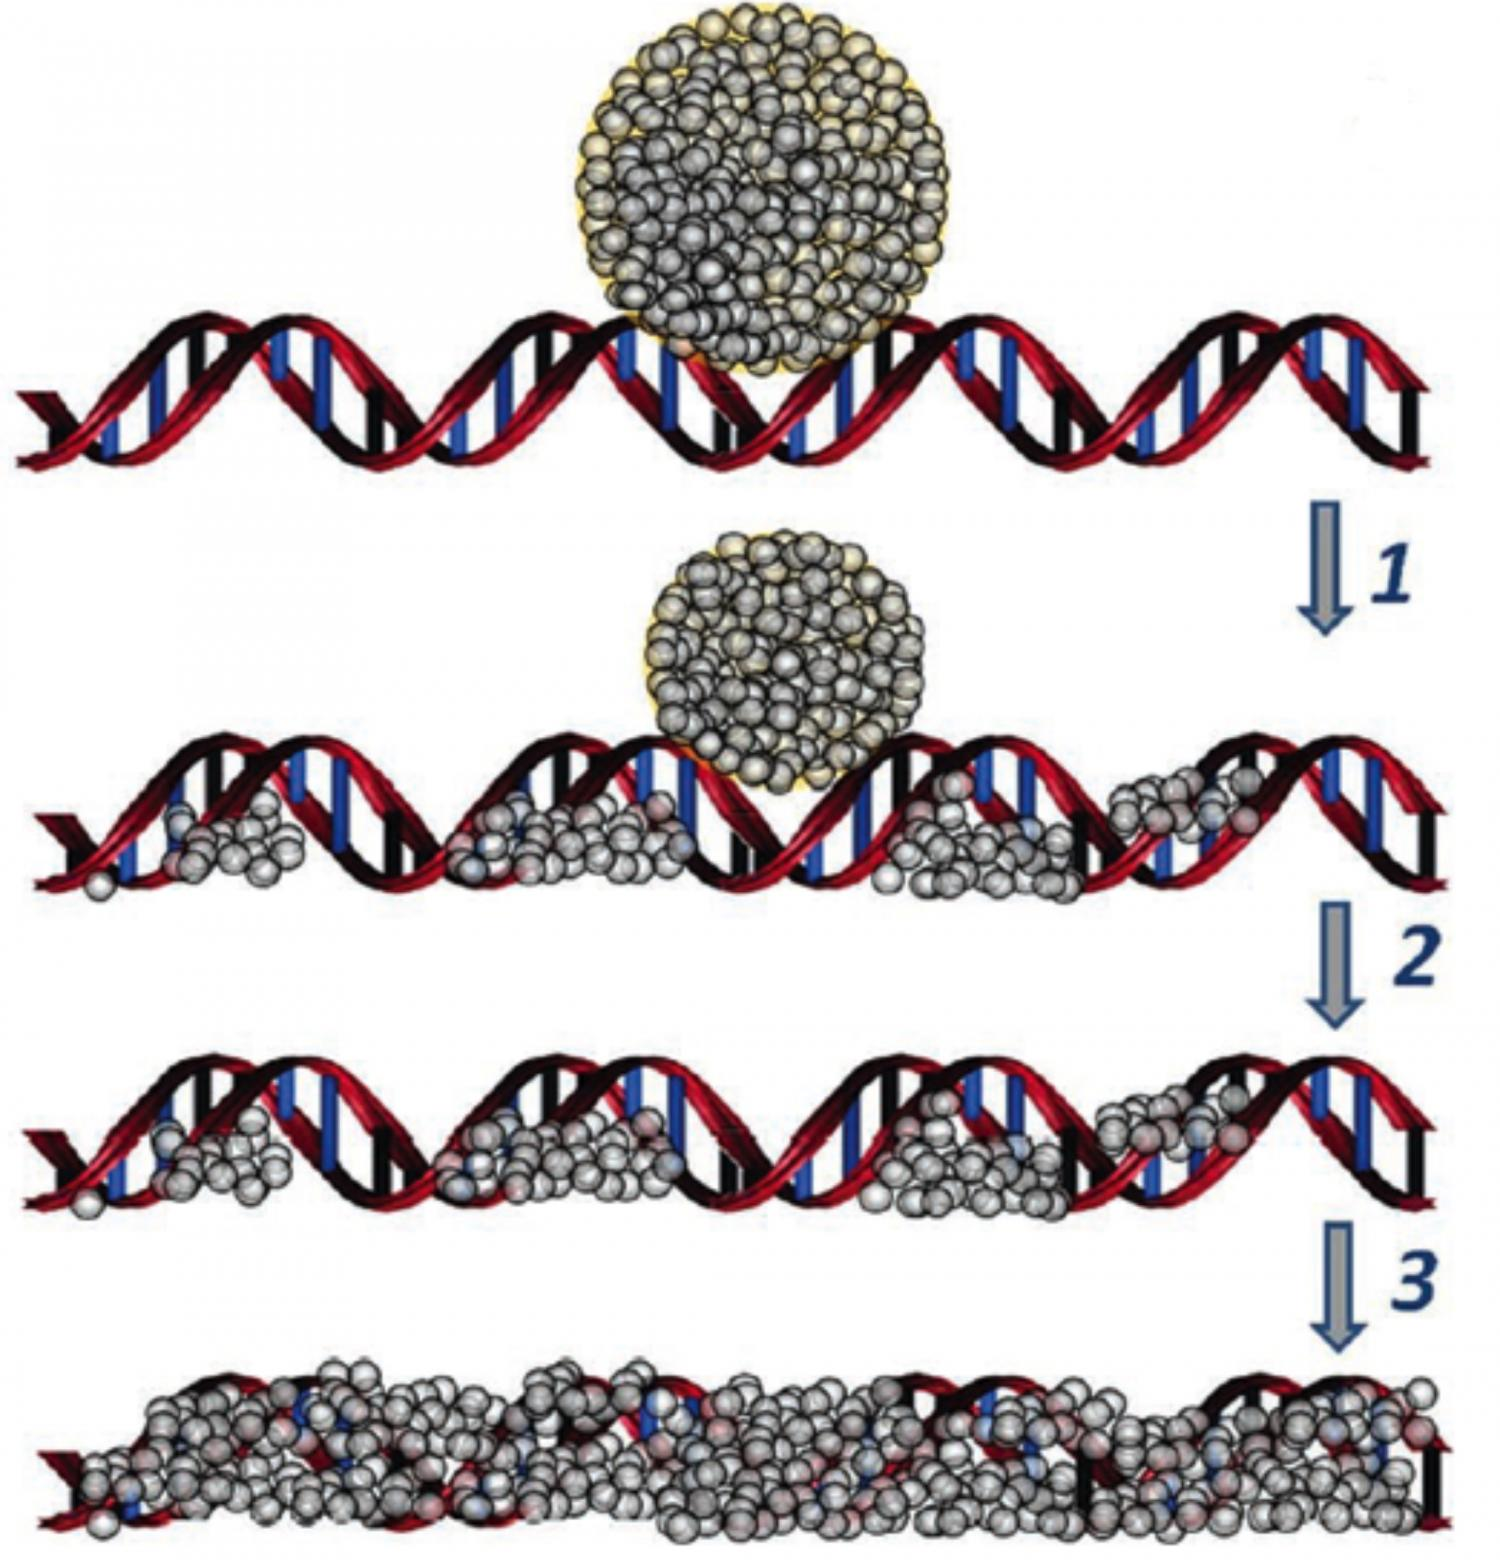 Scientists make silver nanowires based on DNA molecules.